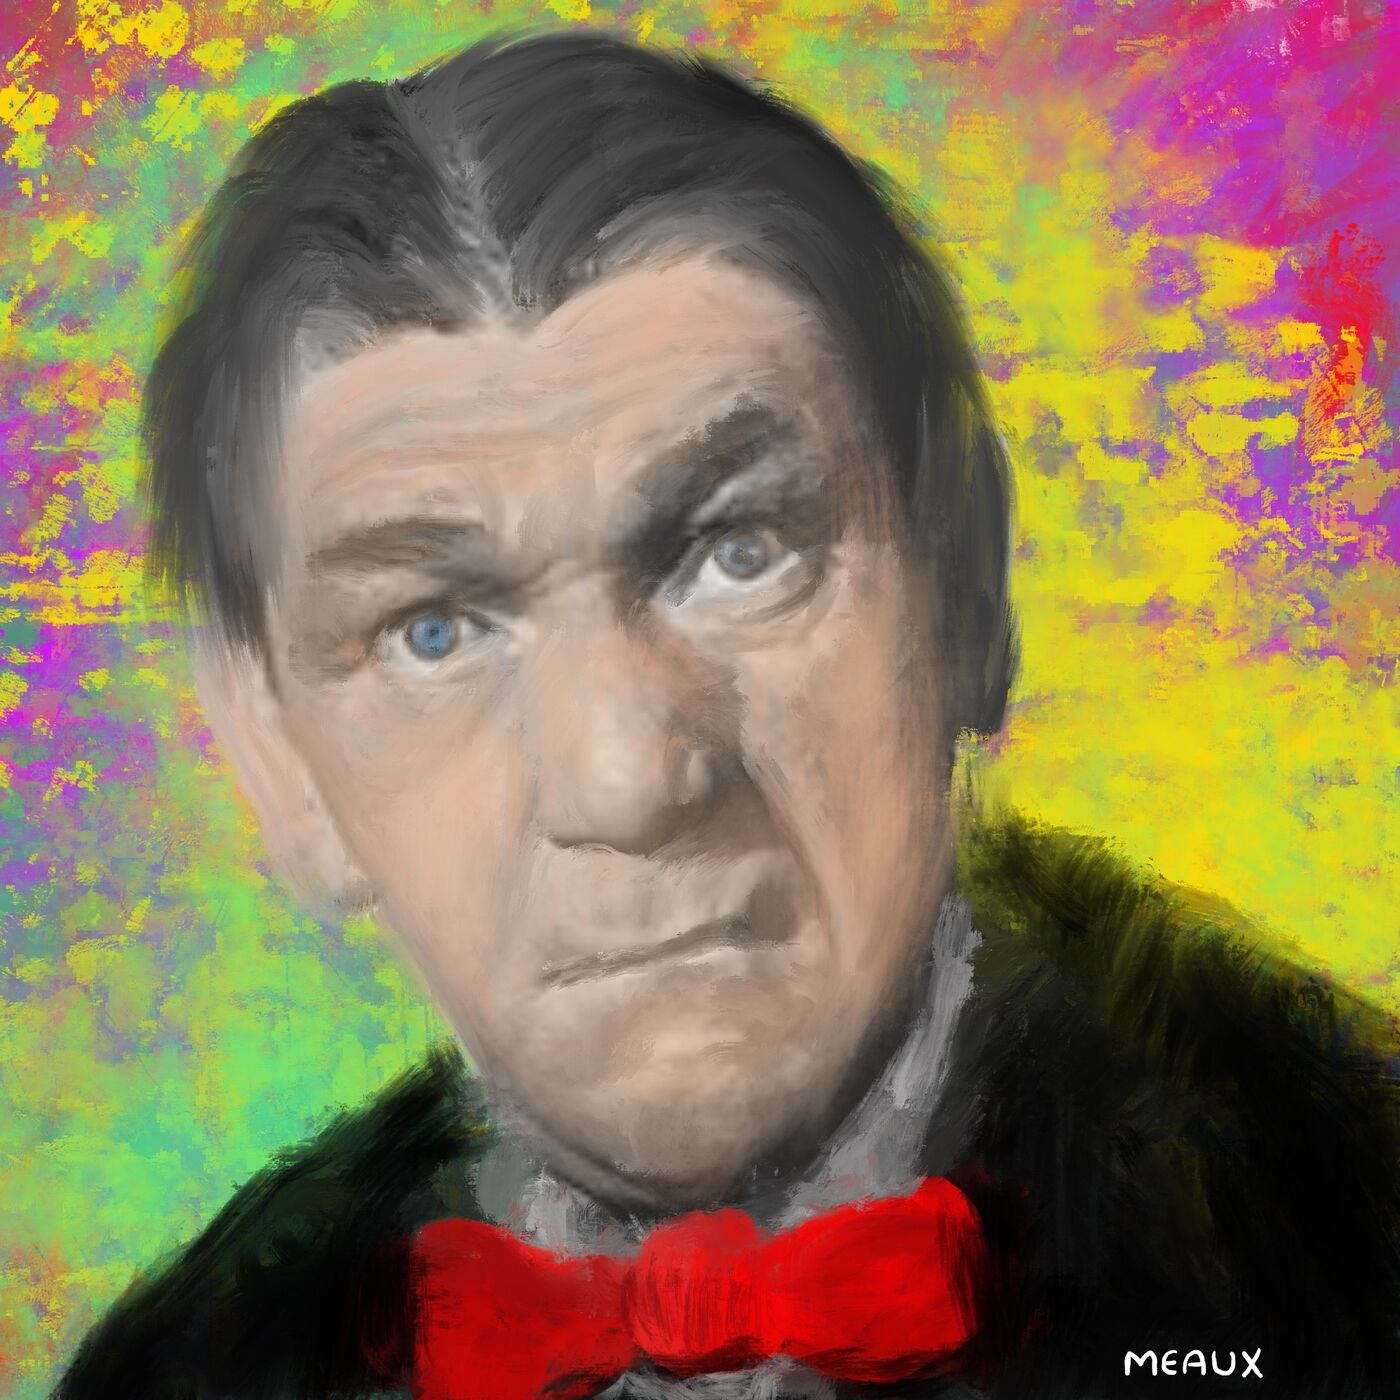 Reducing Violence in TV and Movies Ala Shemp